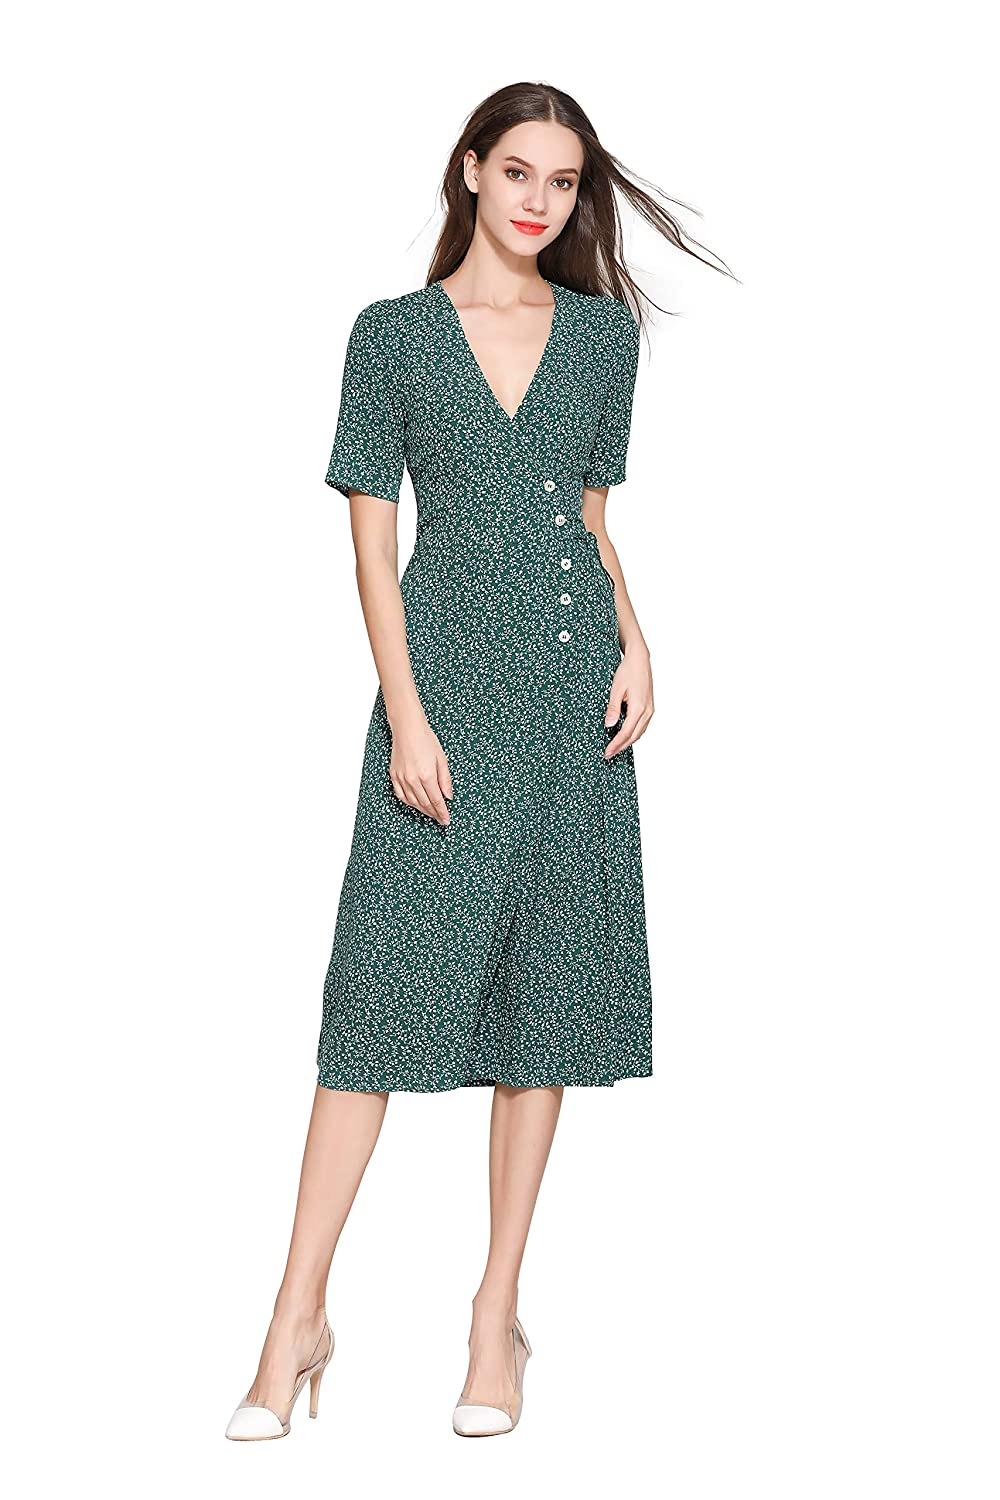 1940s Dresses | 40s Dress, Swing Dress Little Smily Womens Vintage Small Floral V Neck Midi Wrap Dress Short Sleeve $39.90 AT vintagedancer.com